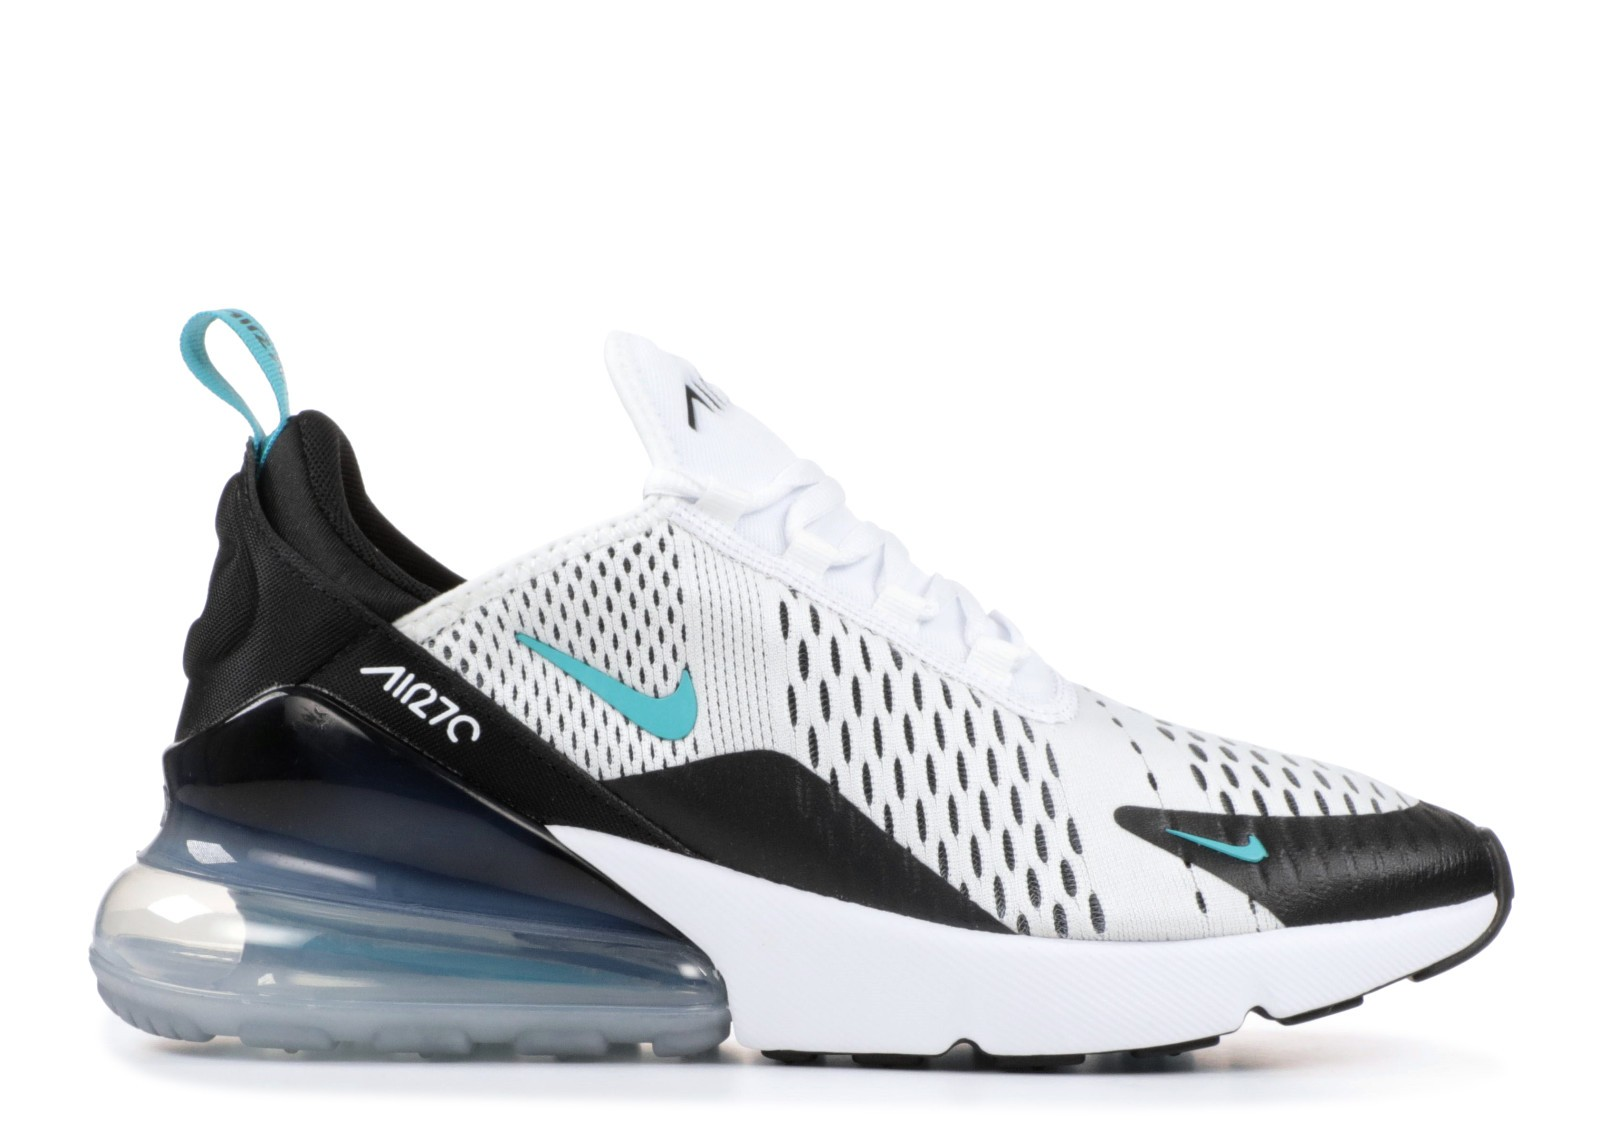 Nike Air Max 270 GS Wit/Dusty Cactus - 943345-101